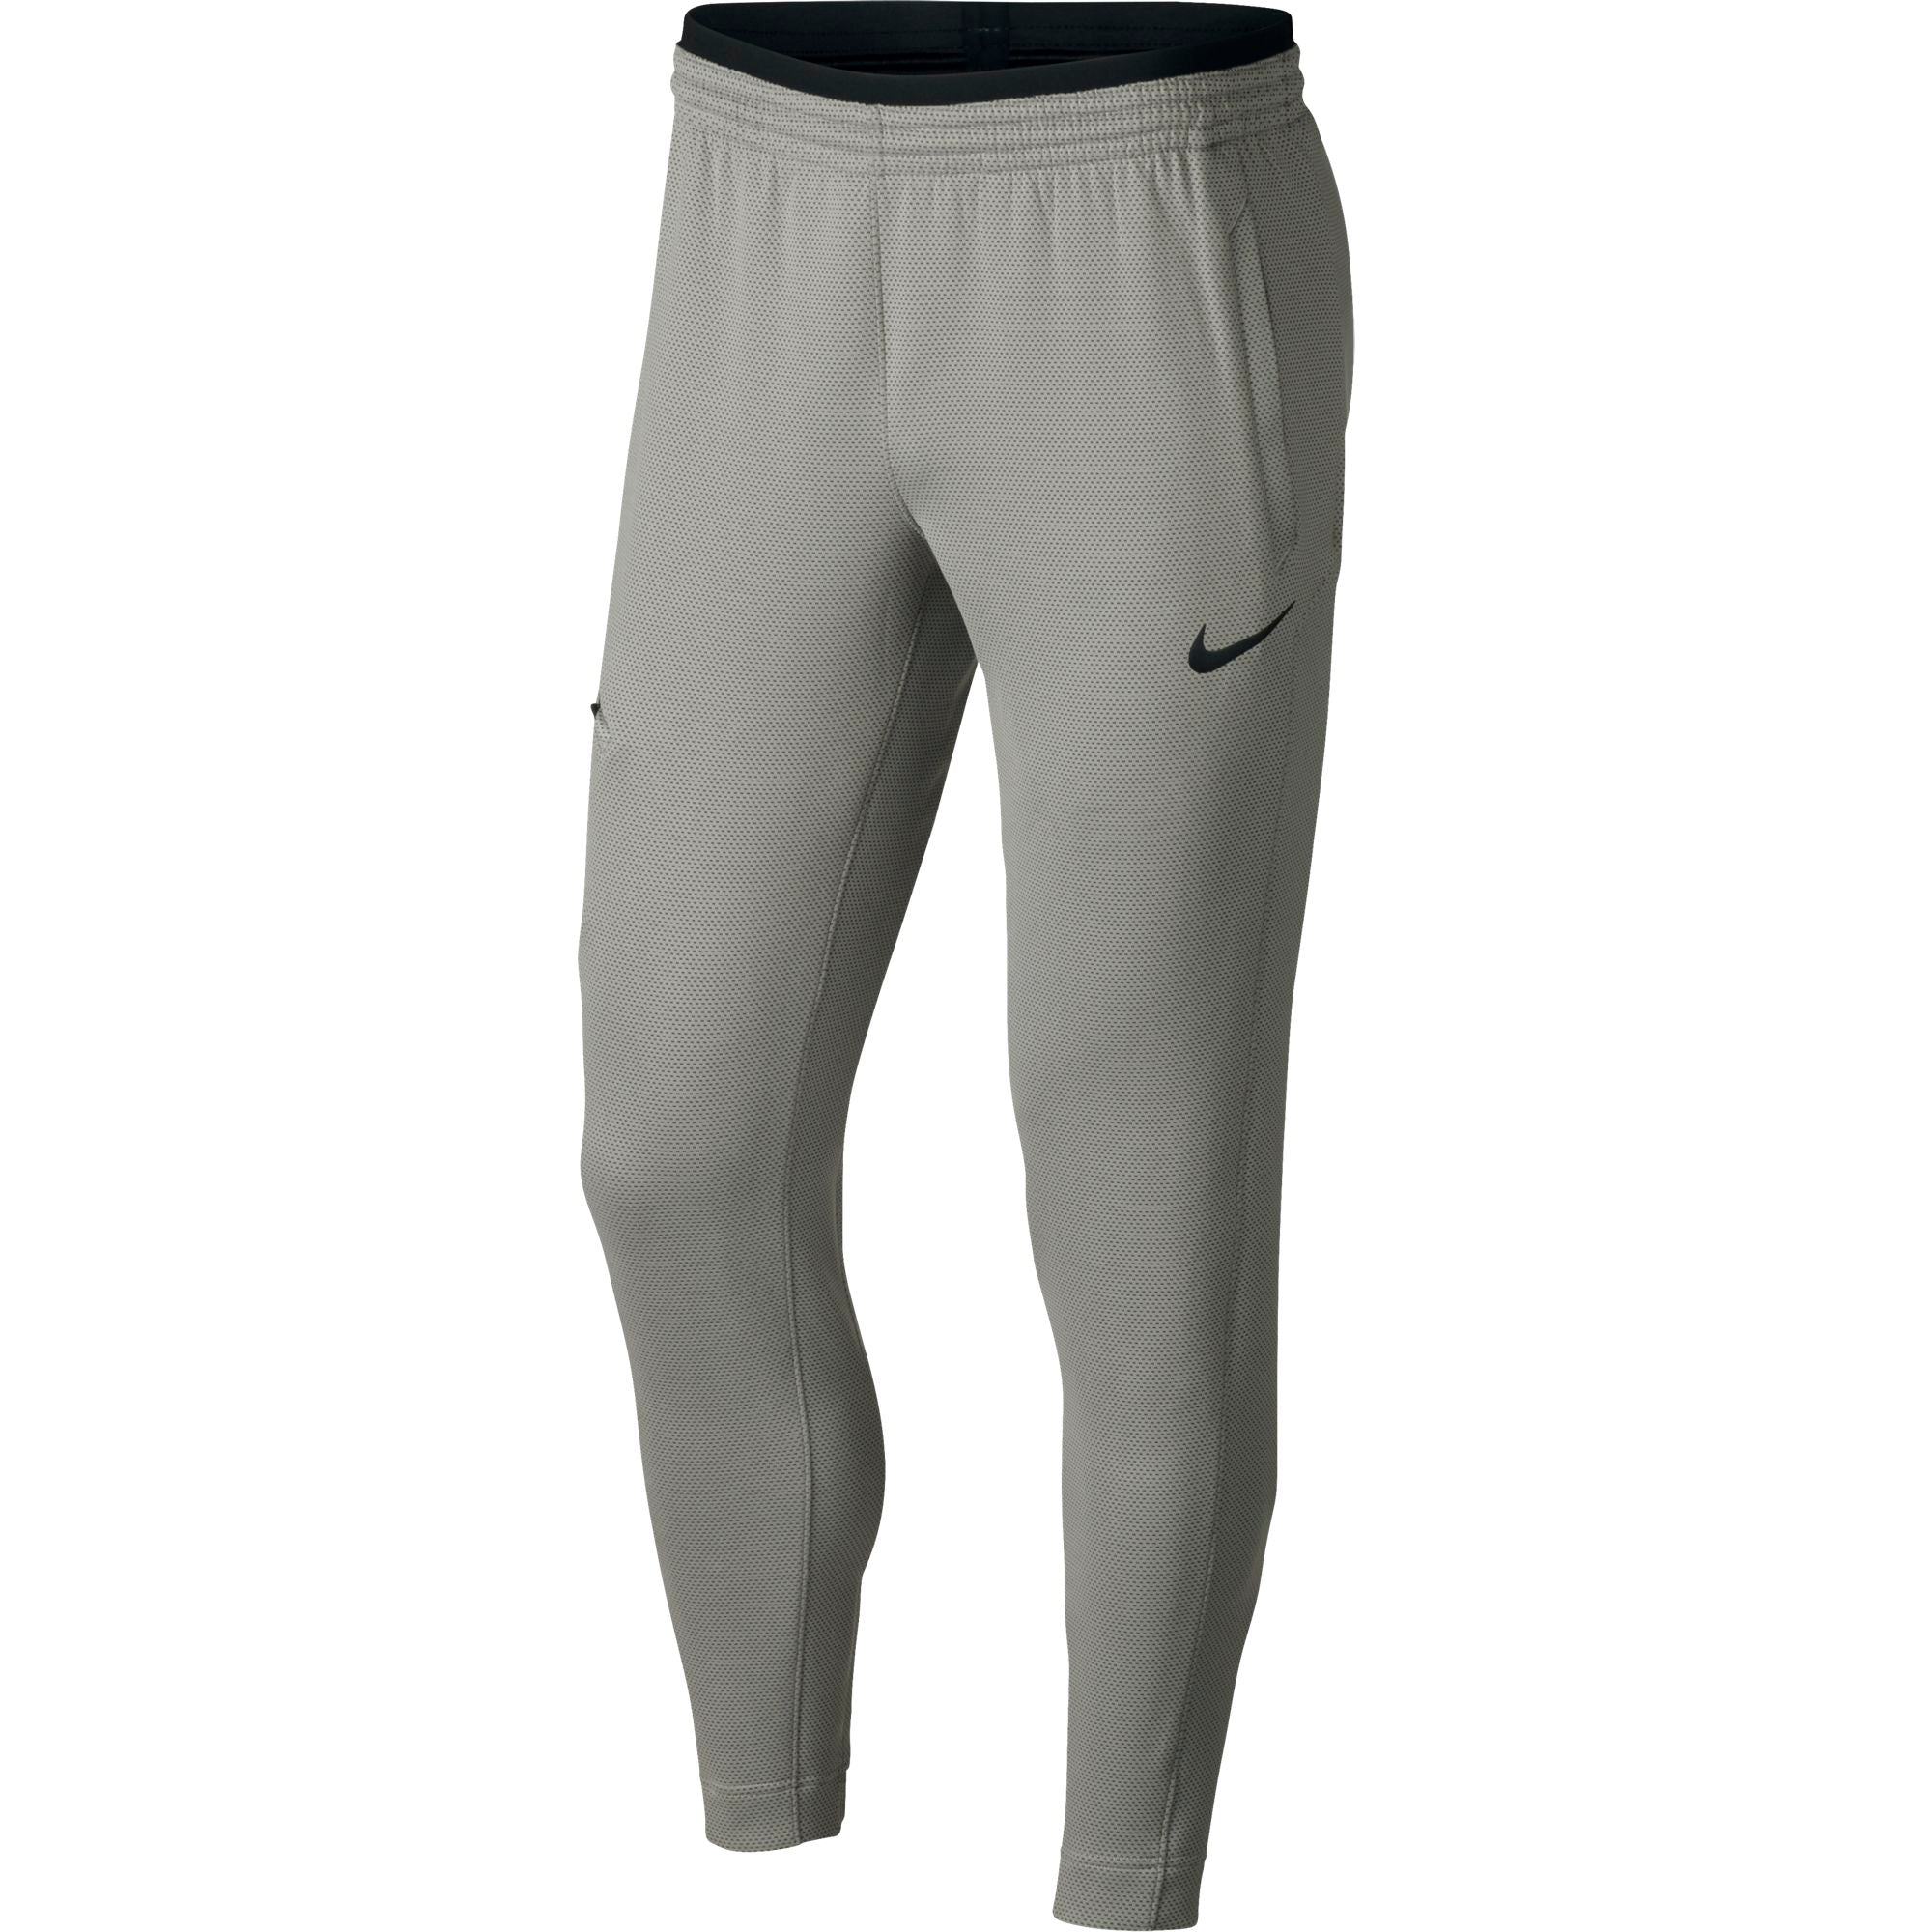 Nike Basketball Therma Flex Showtime Pants - NK-856442-002